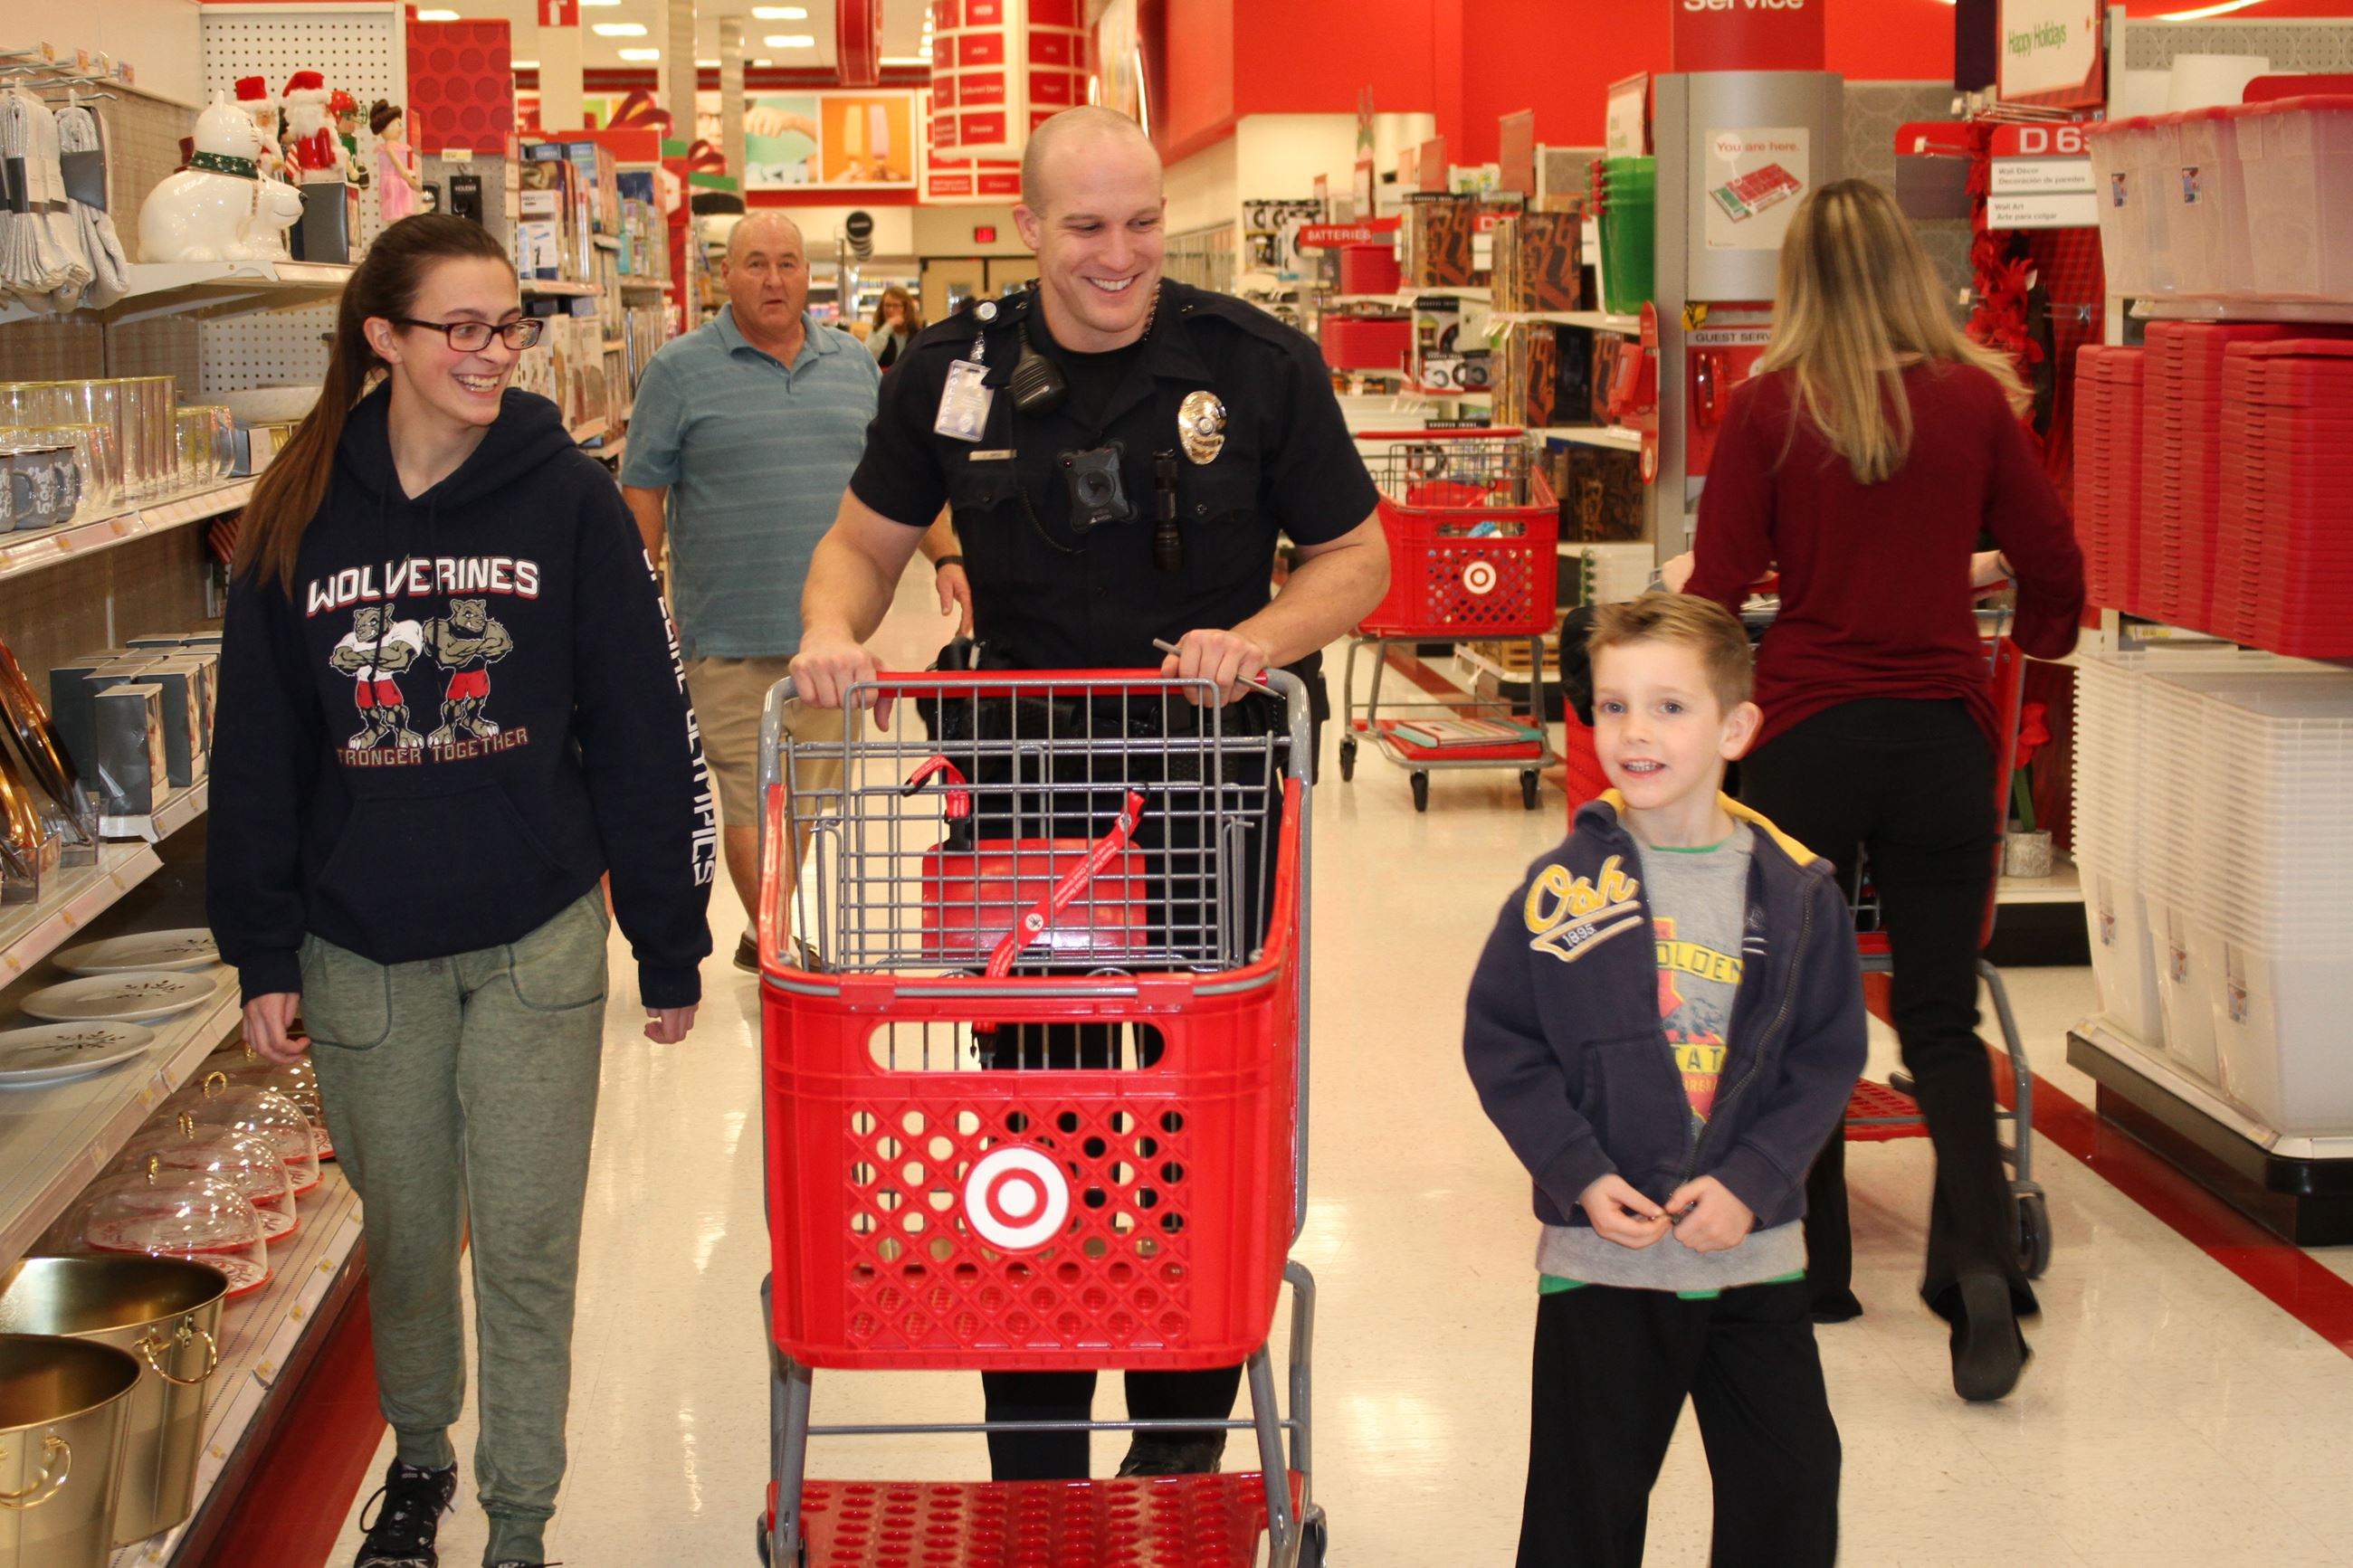 Officer shopping with two laughing children